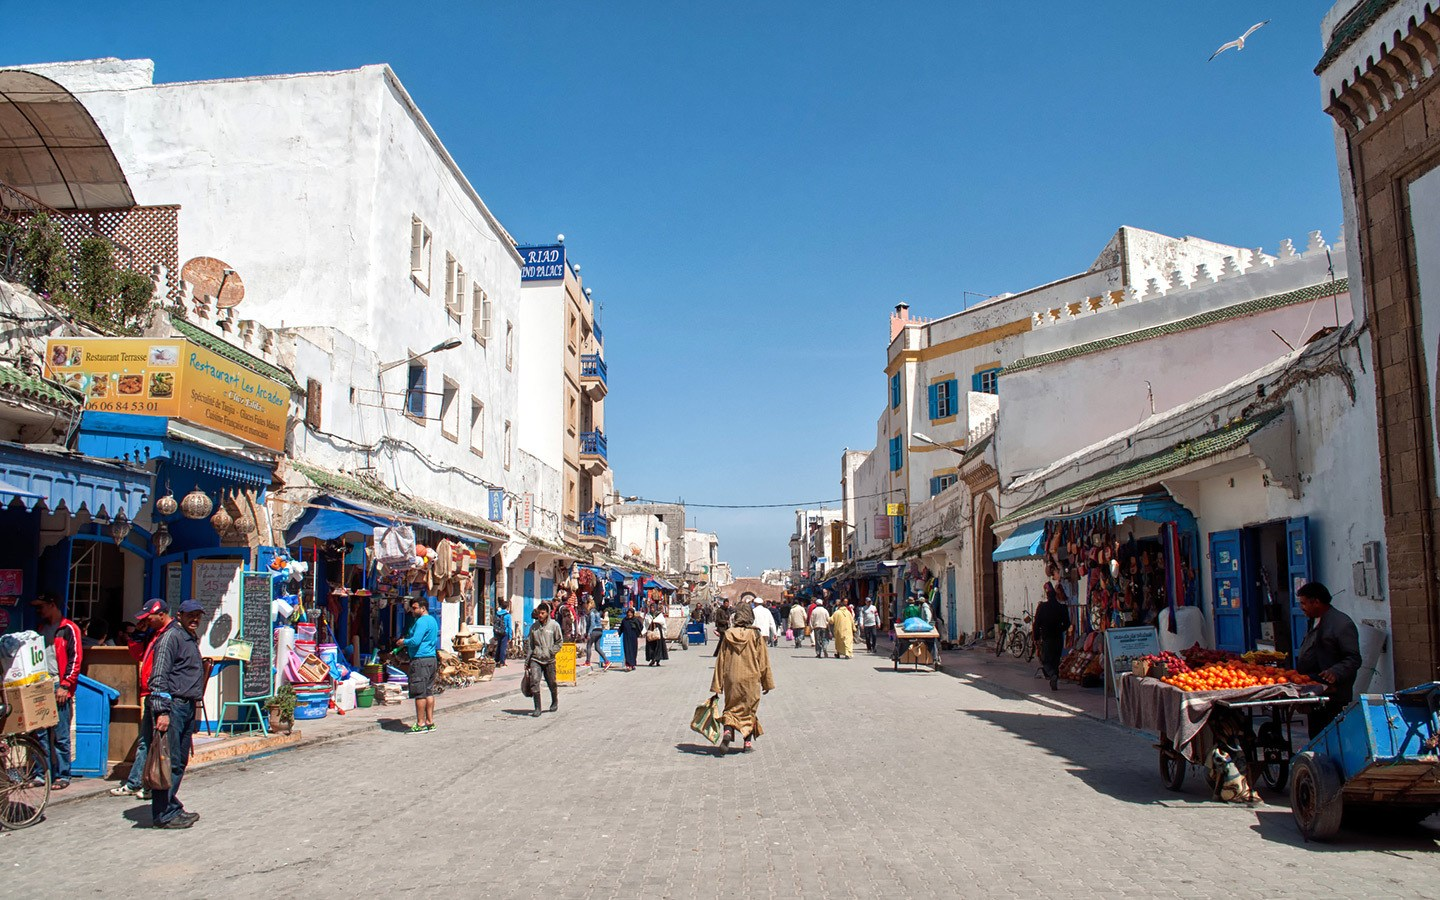 Whitewashed buildings in the medina in Essaouira, Morocco